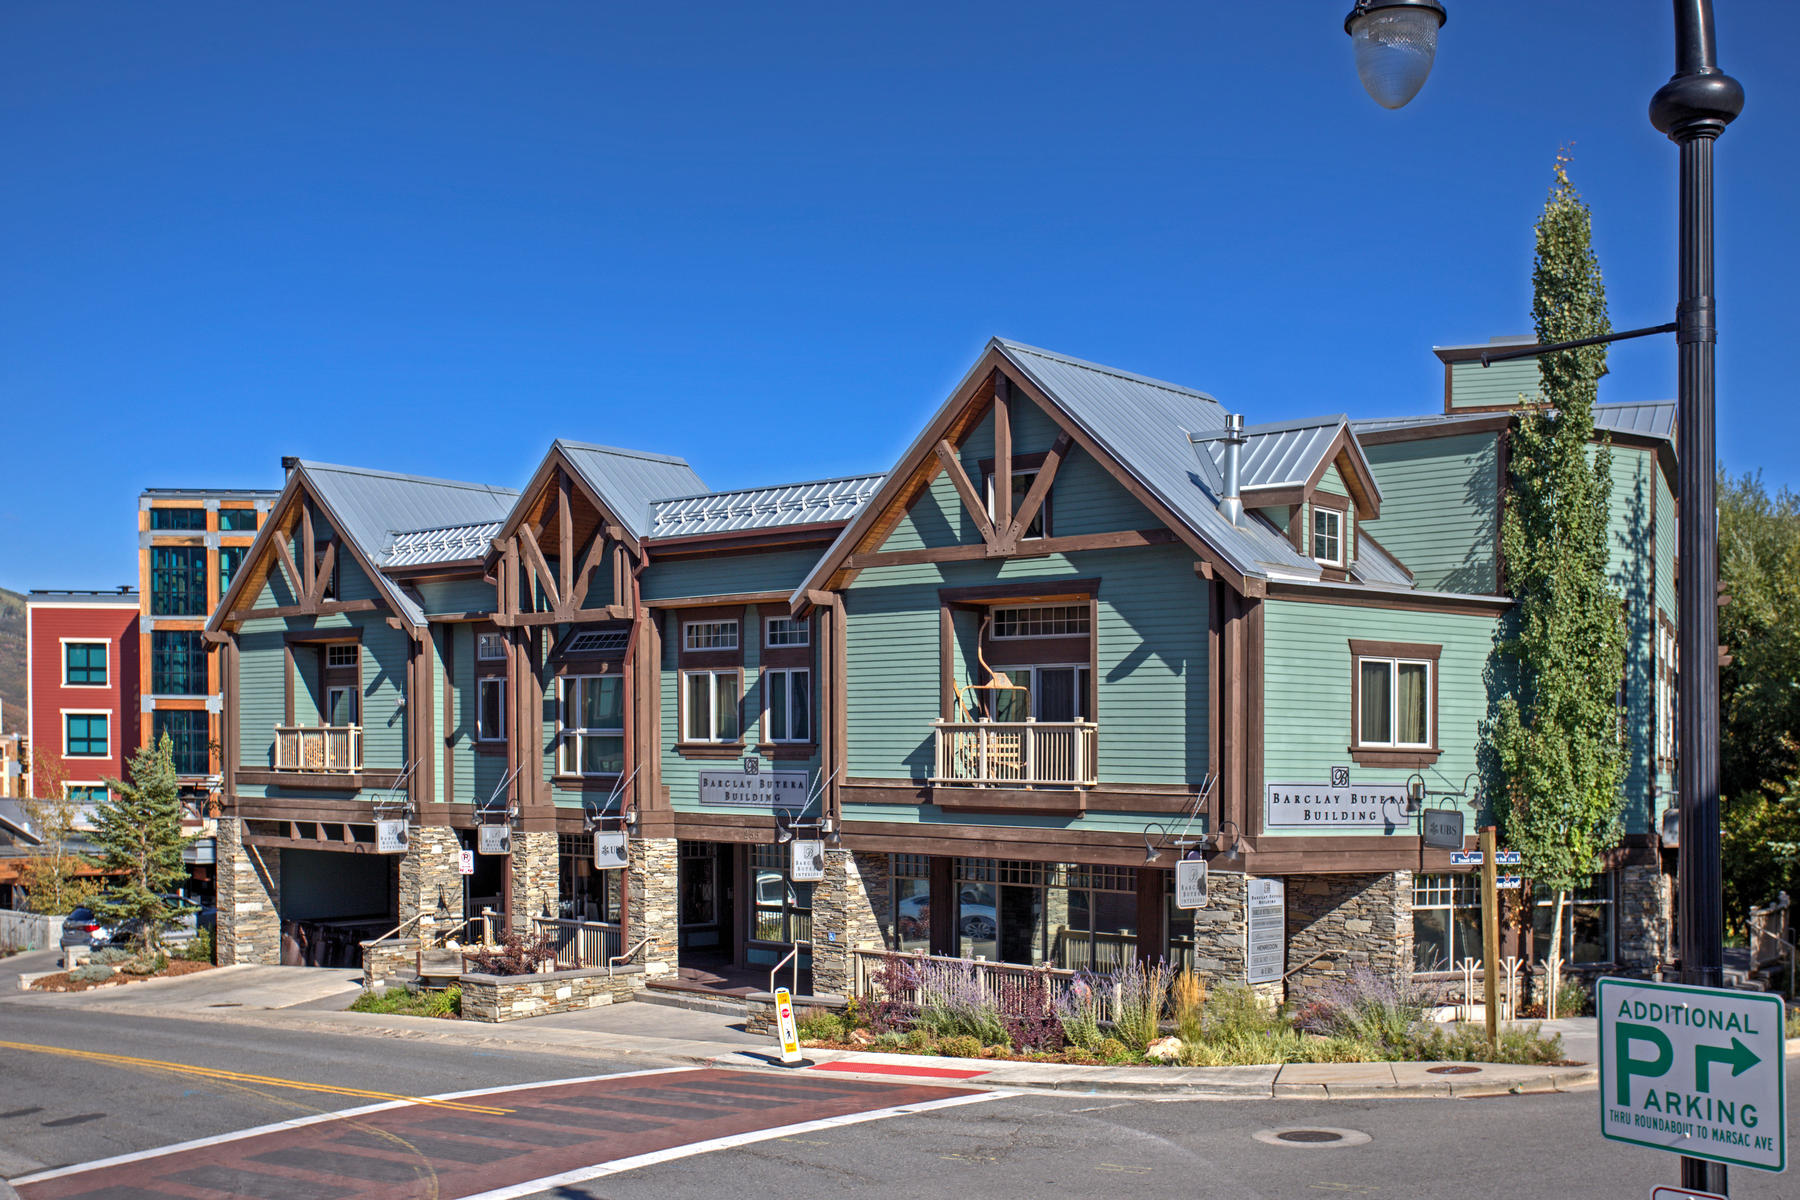 شقة بعمارة للـ Sale في The Perfect Old Town Location! 255 Heber Avenue #103 Park City, Utah 84060 United States